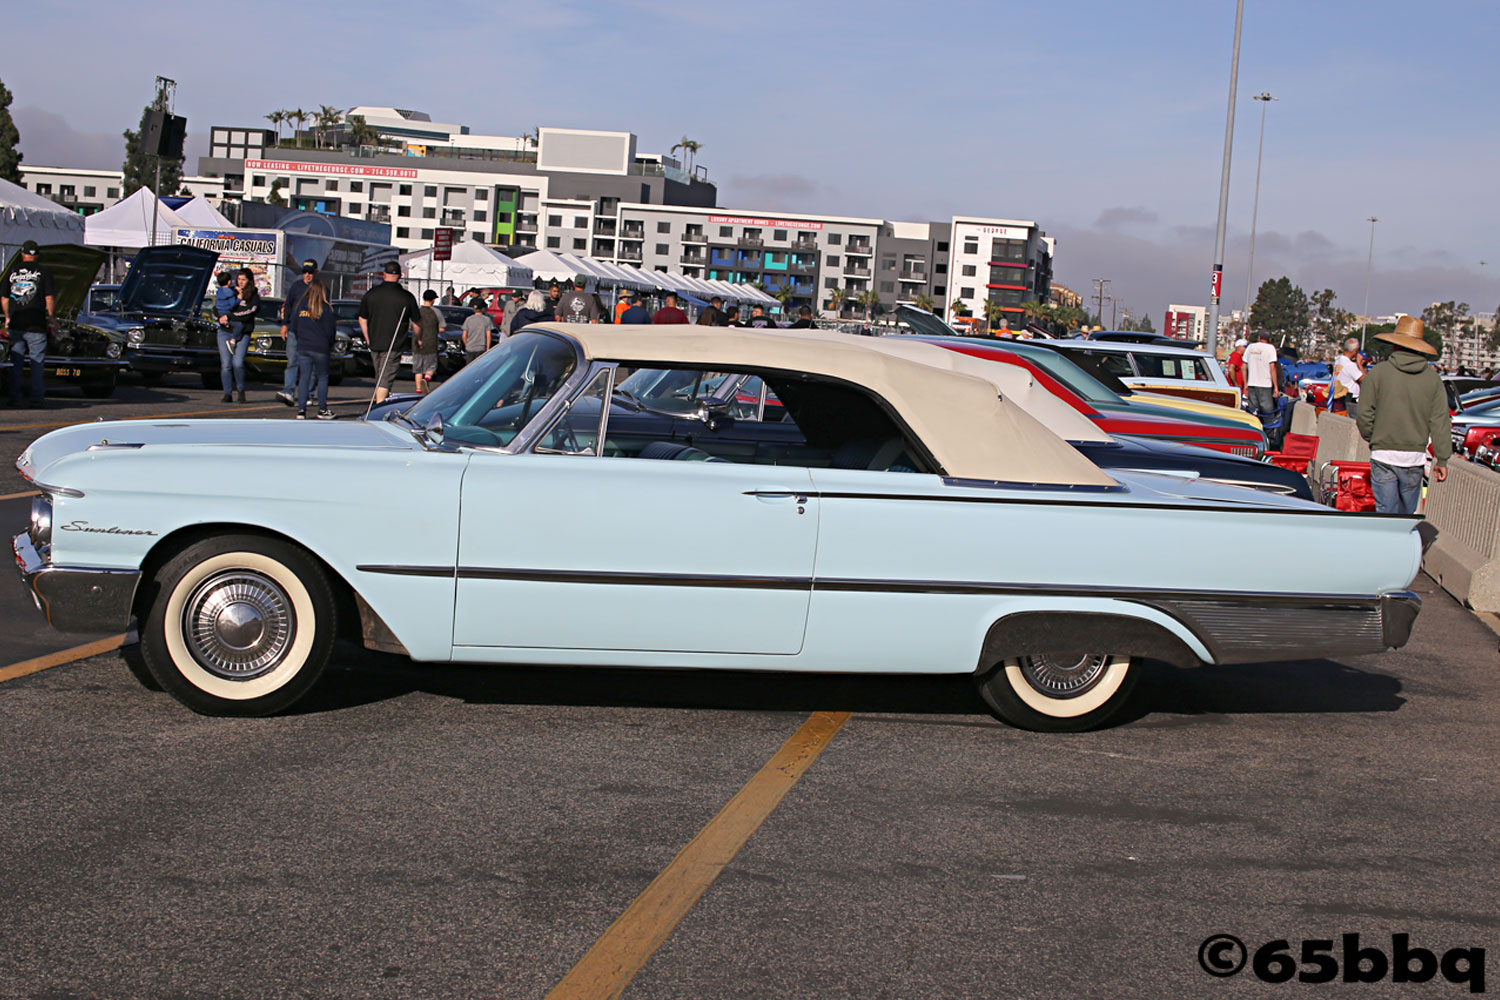 fabulous-fords-forever-april-2019-65bbq-59.jpg